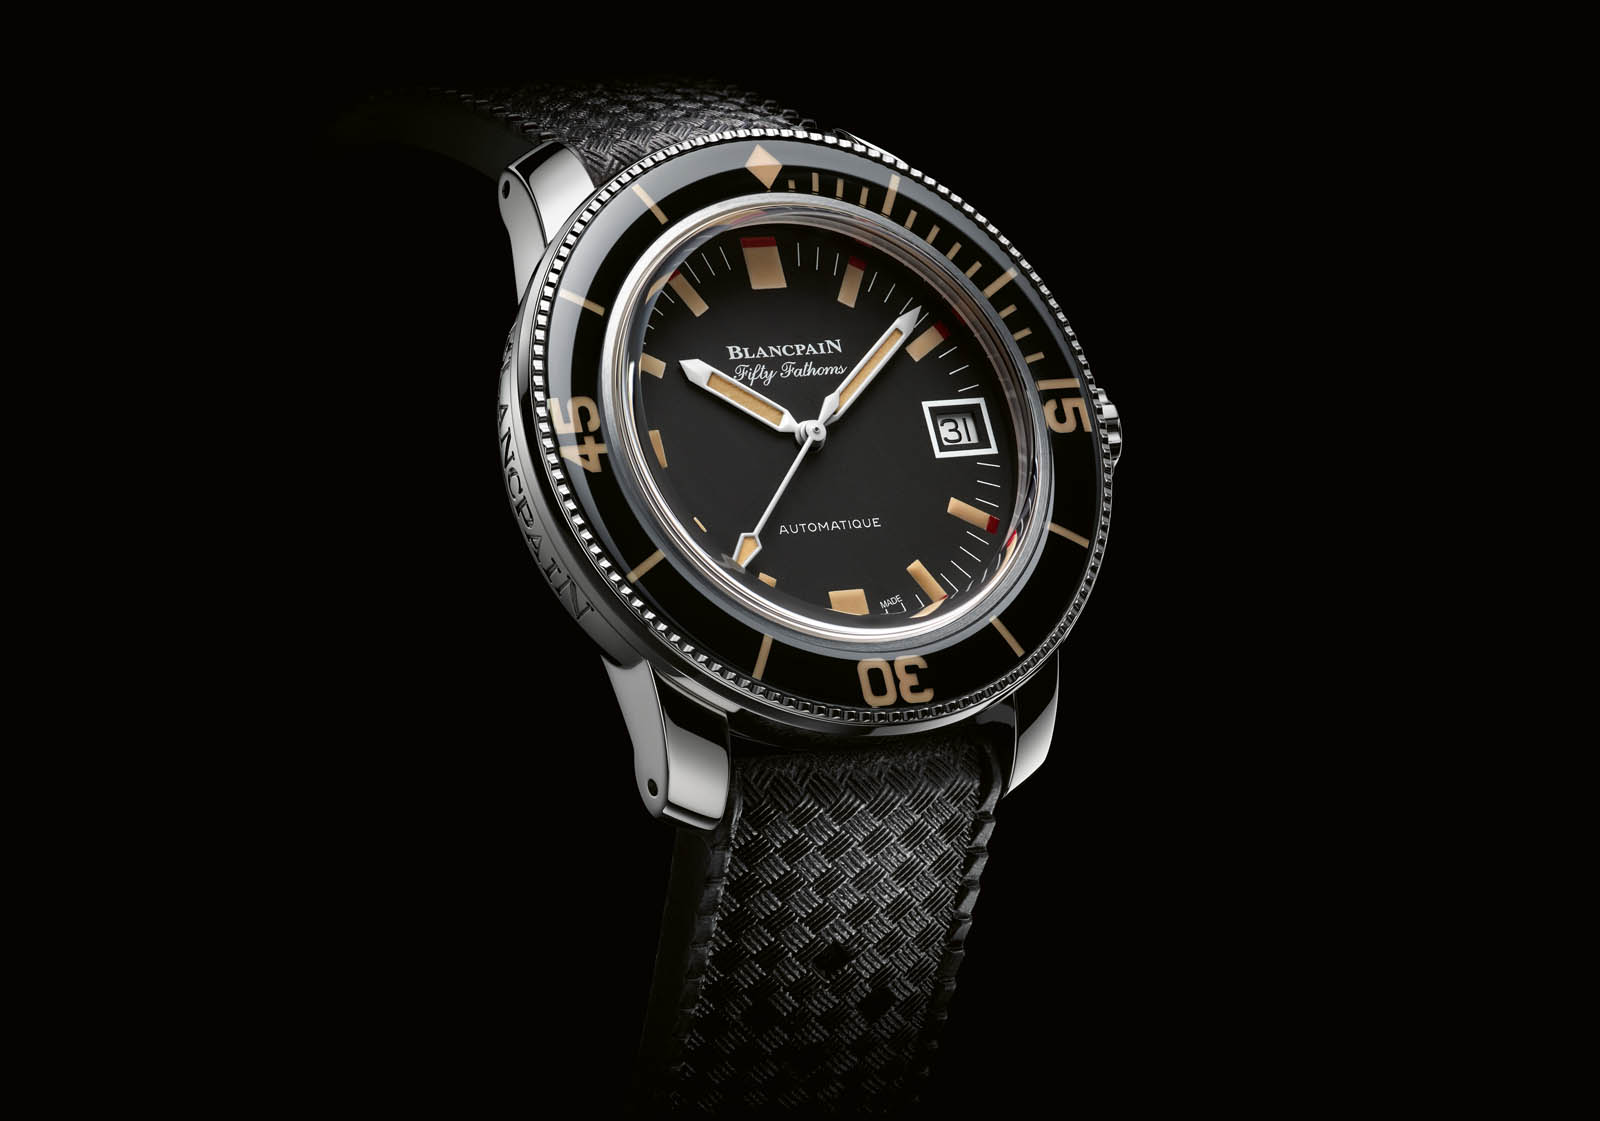 Introducing The Blancpain Fifty Fathoms Barakuda Sjx Watches